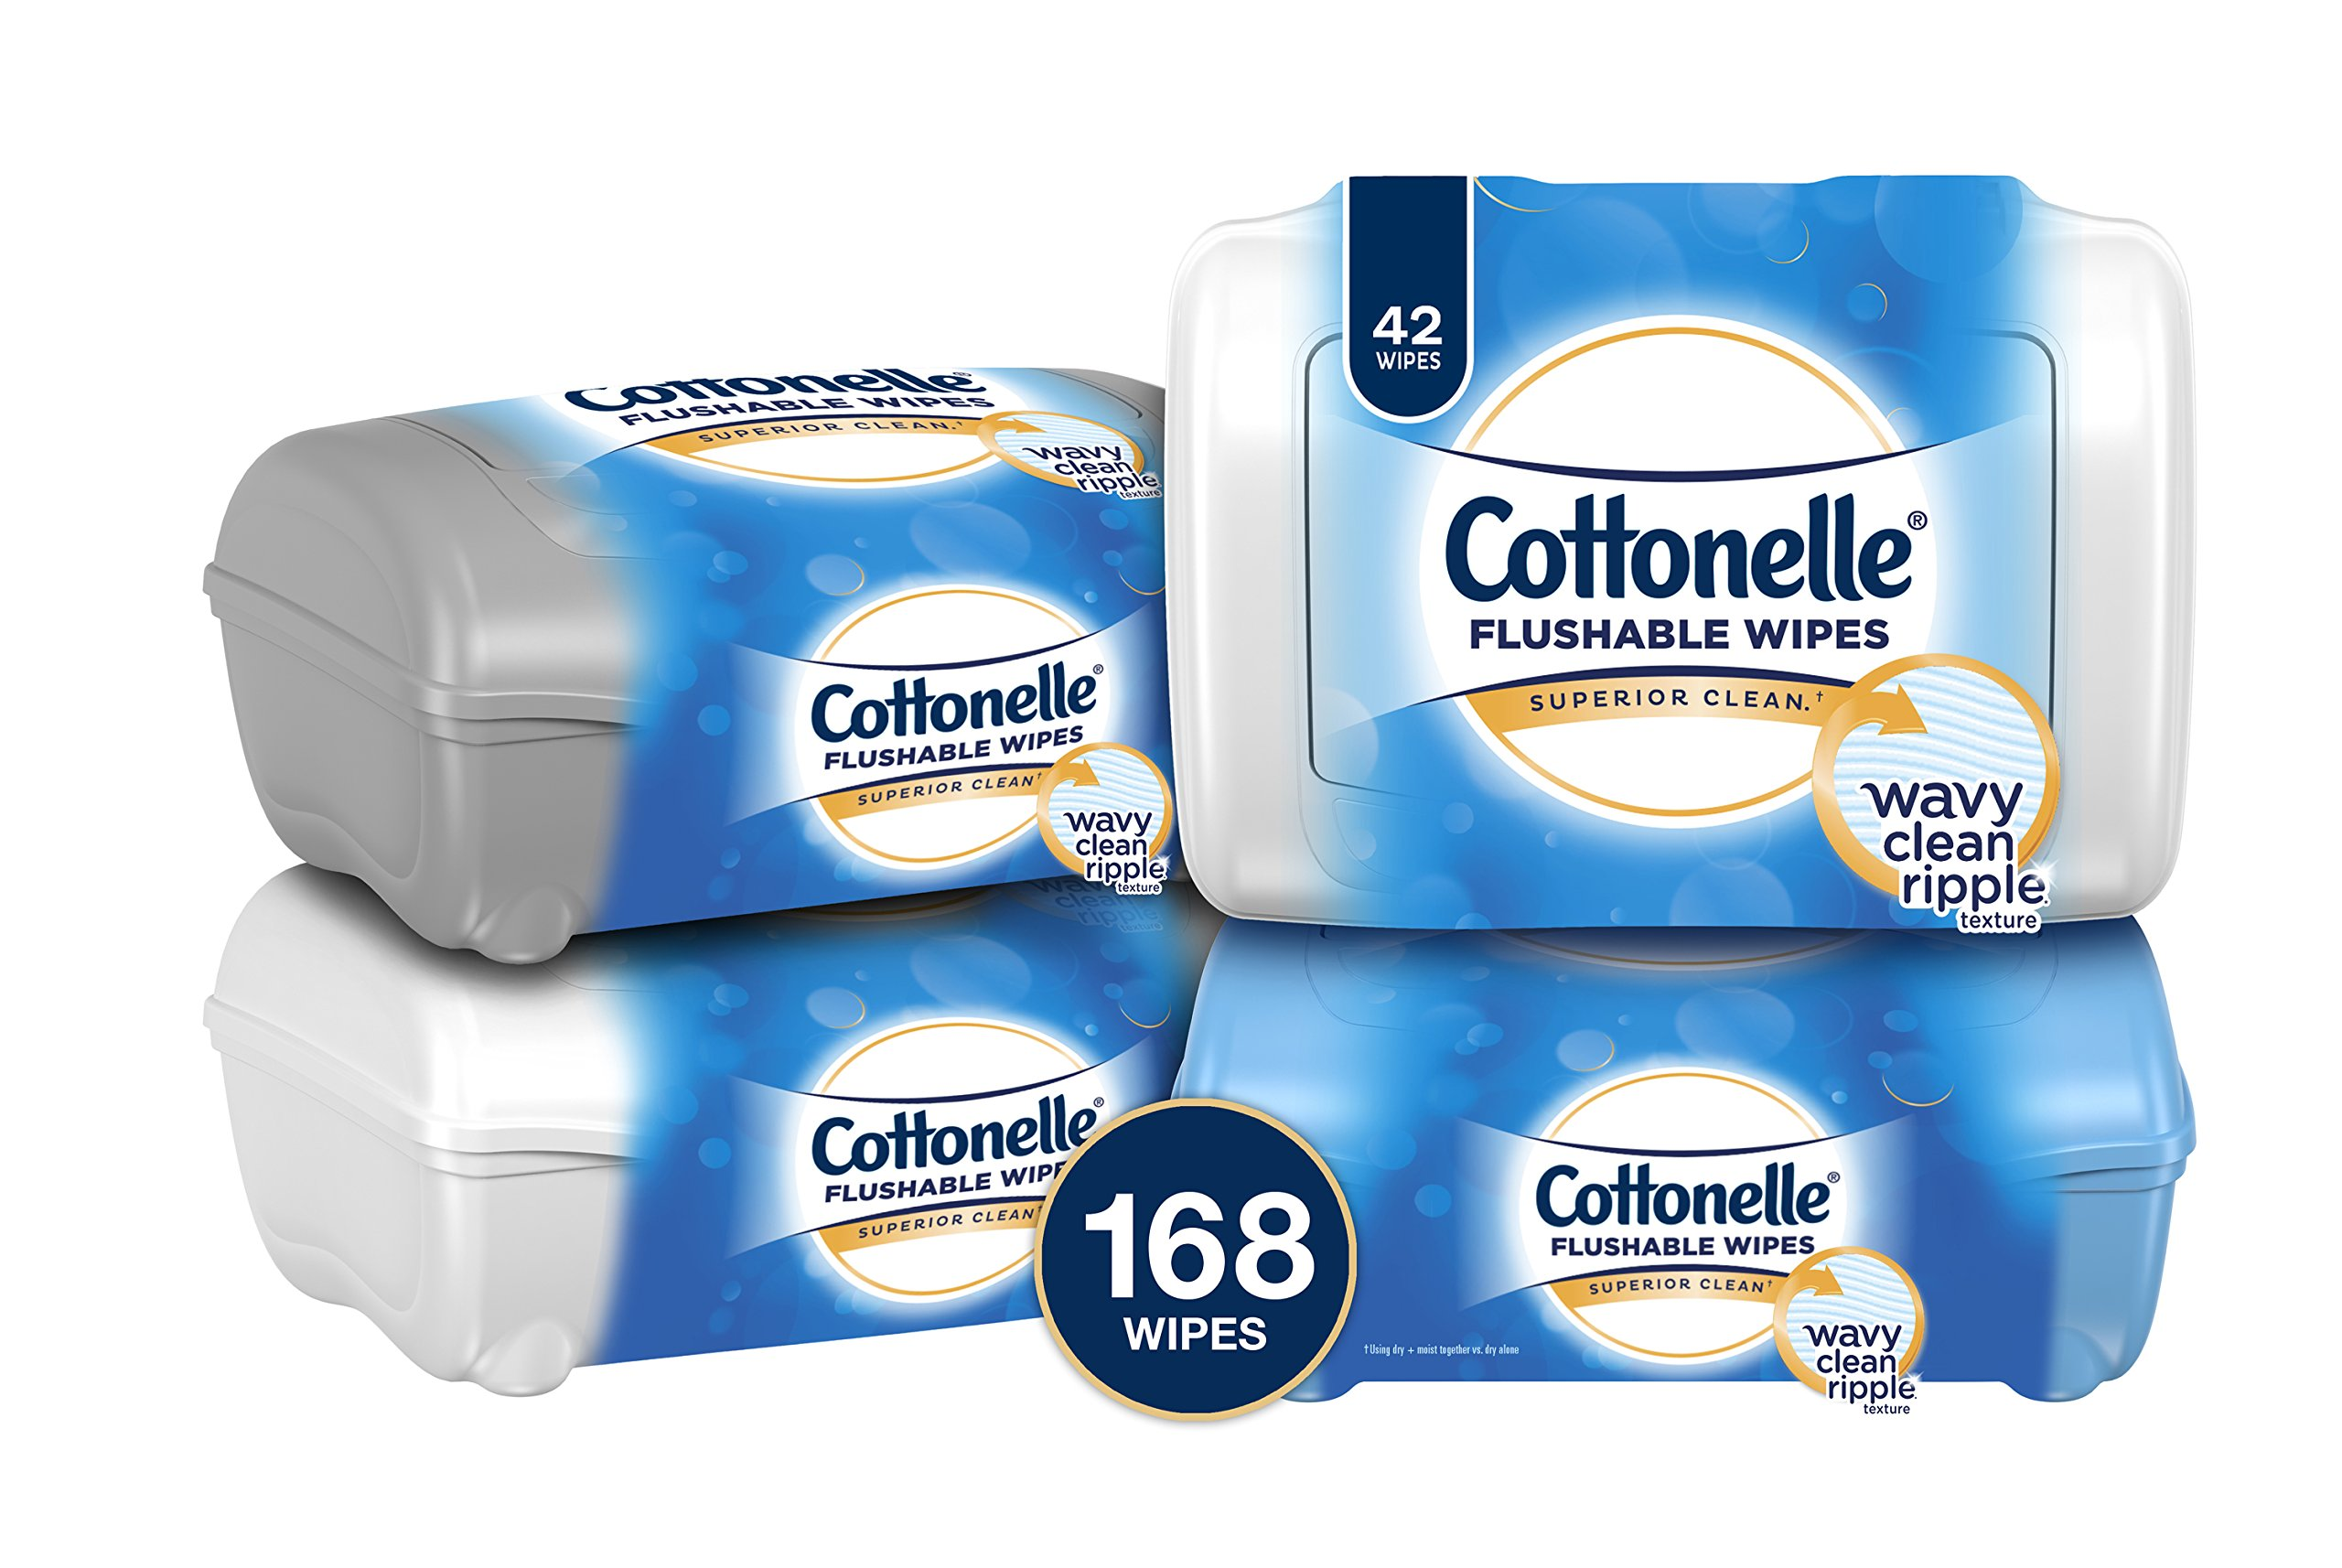 Cottonelle FreshCare Flushable Wipes Refill Tub, 42 Flushable Wet Wipes, Pack of 4